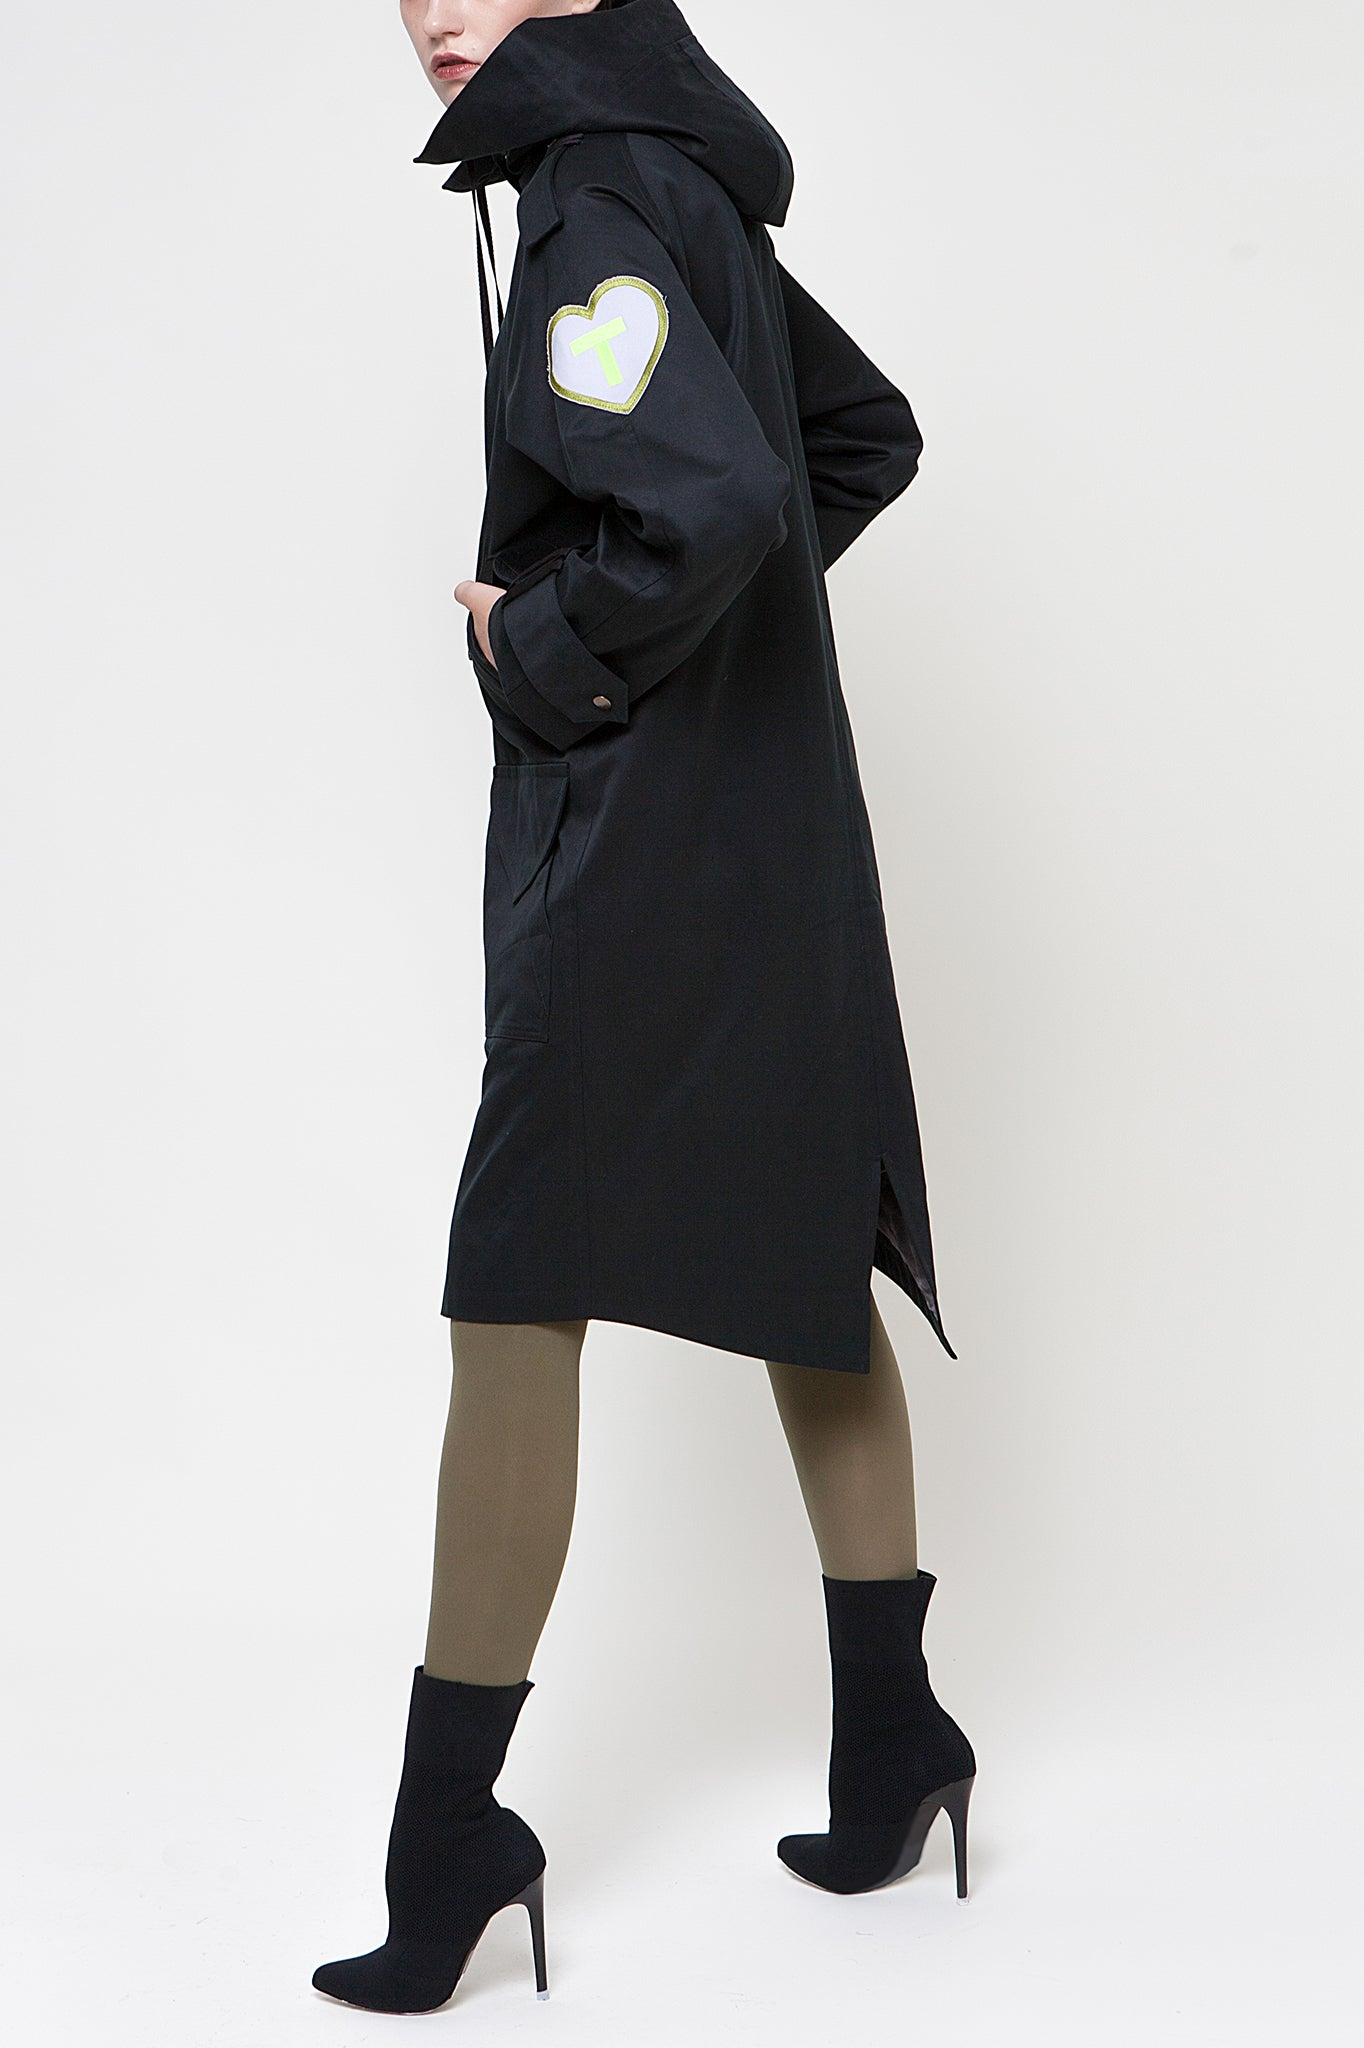 Talented Black Hooded Parka Coat